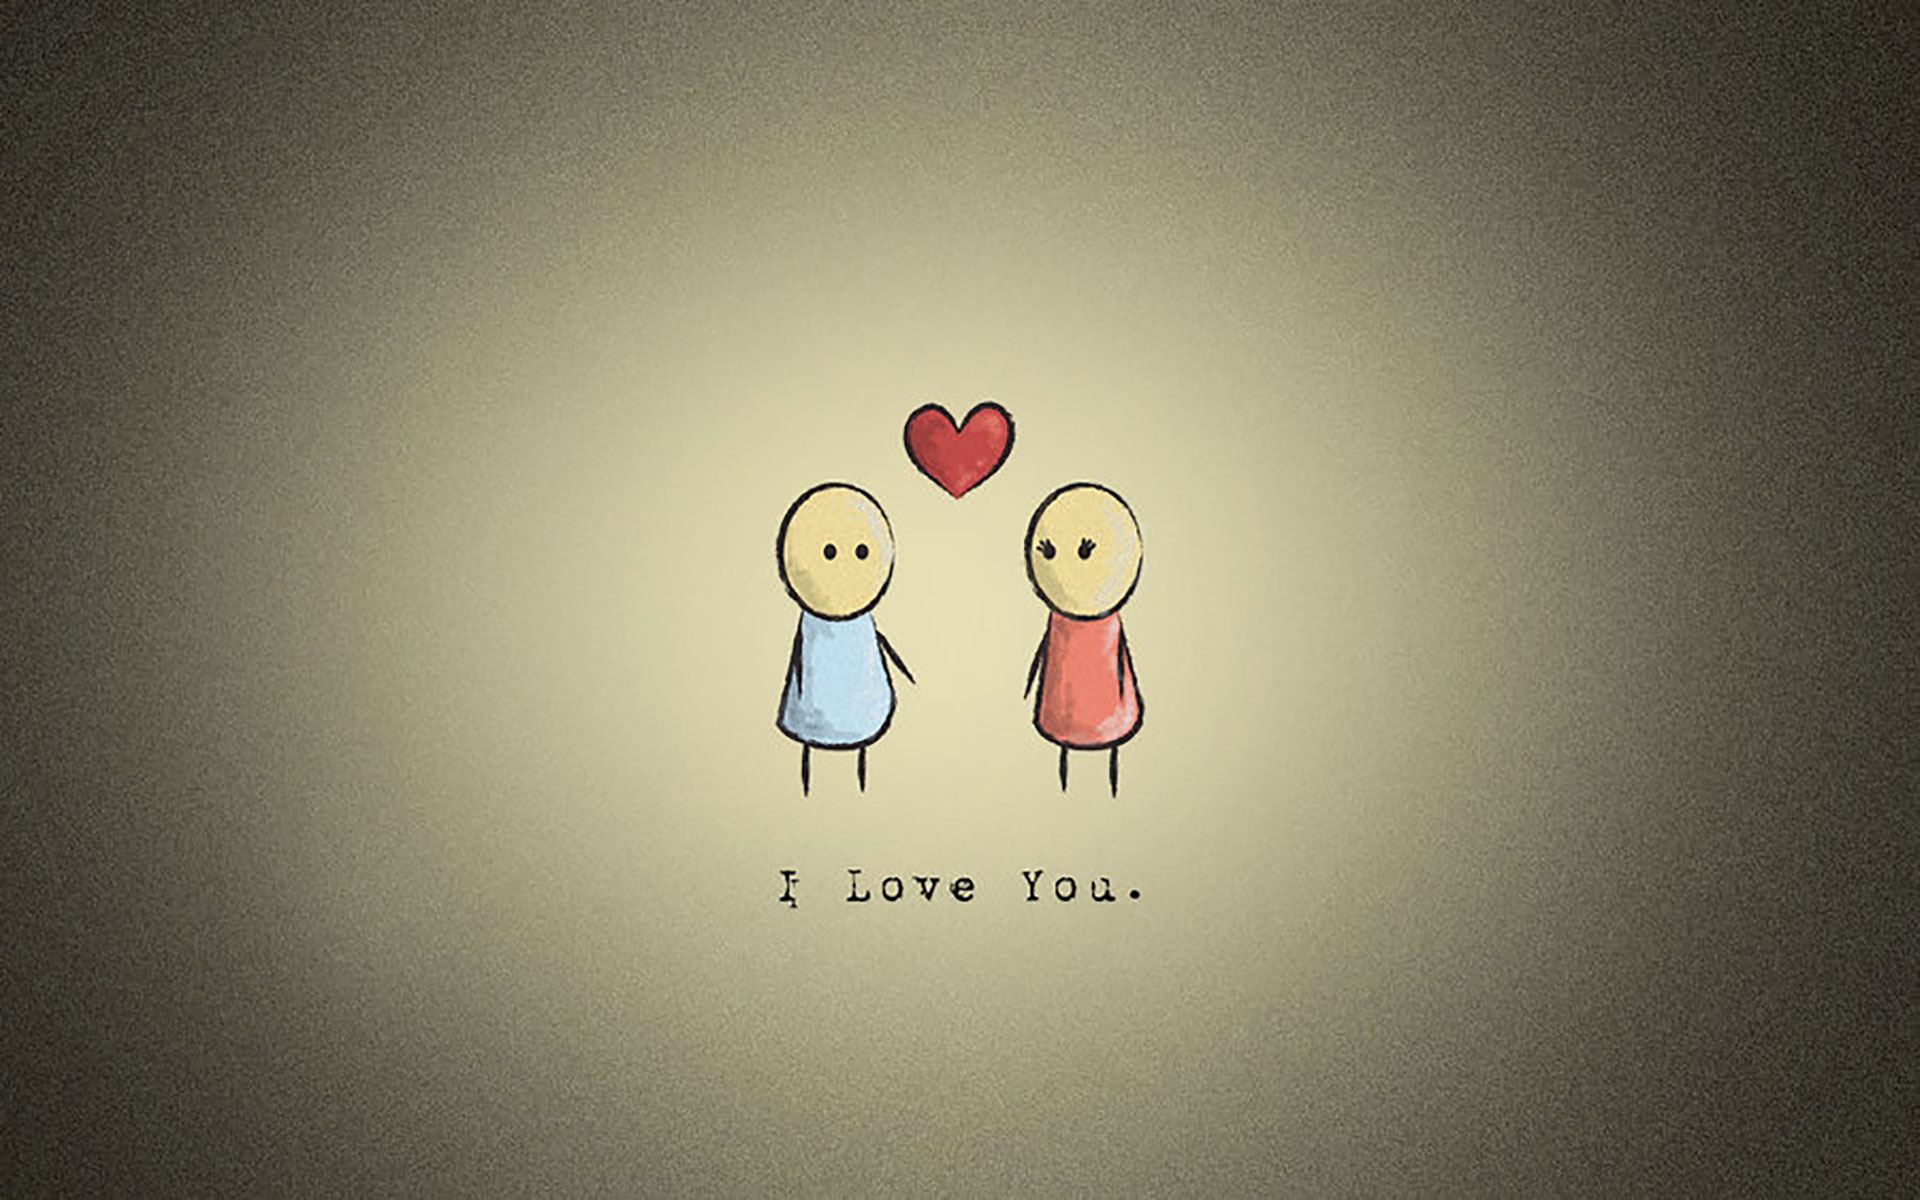 Wallpaper All My Love Is For You : 25+ Free HD I Love You Wallpapers cute I Love You Images